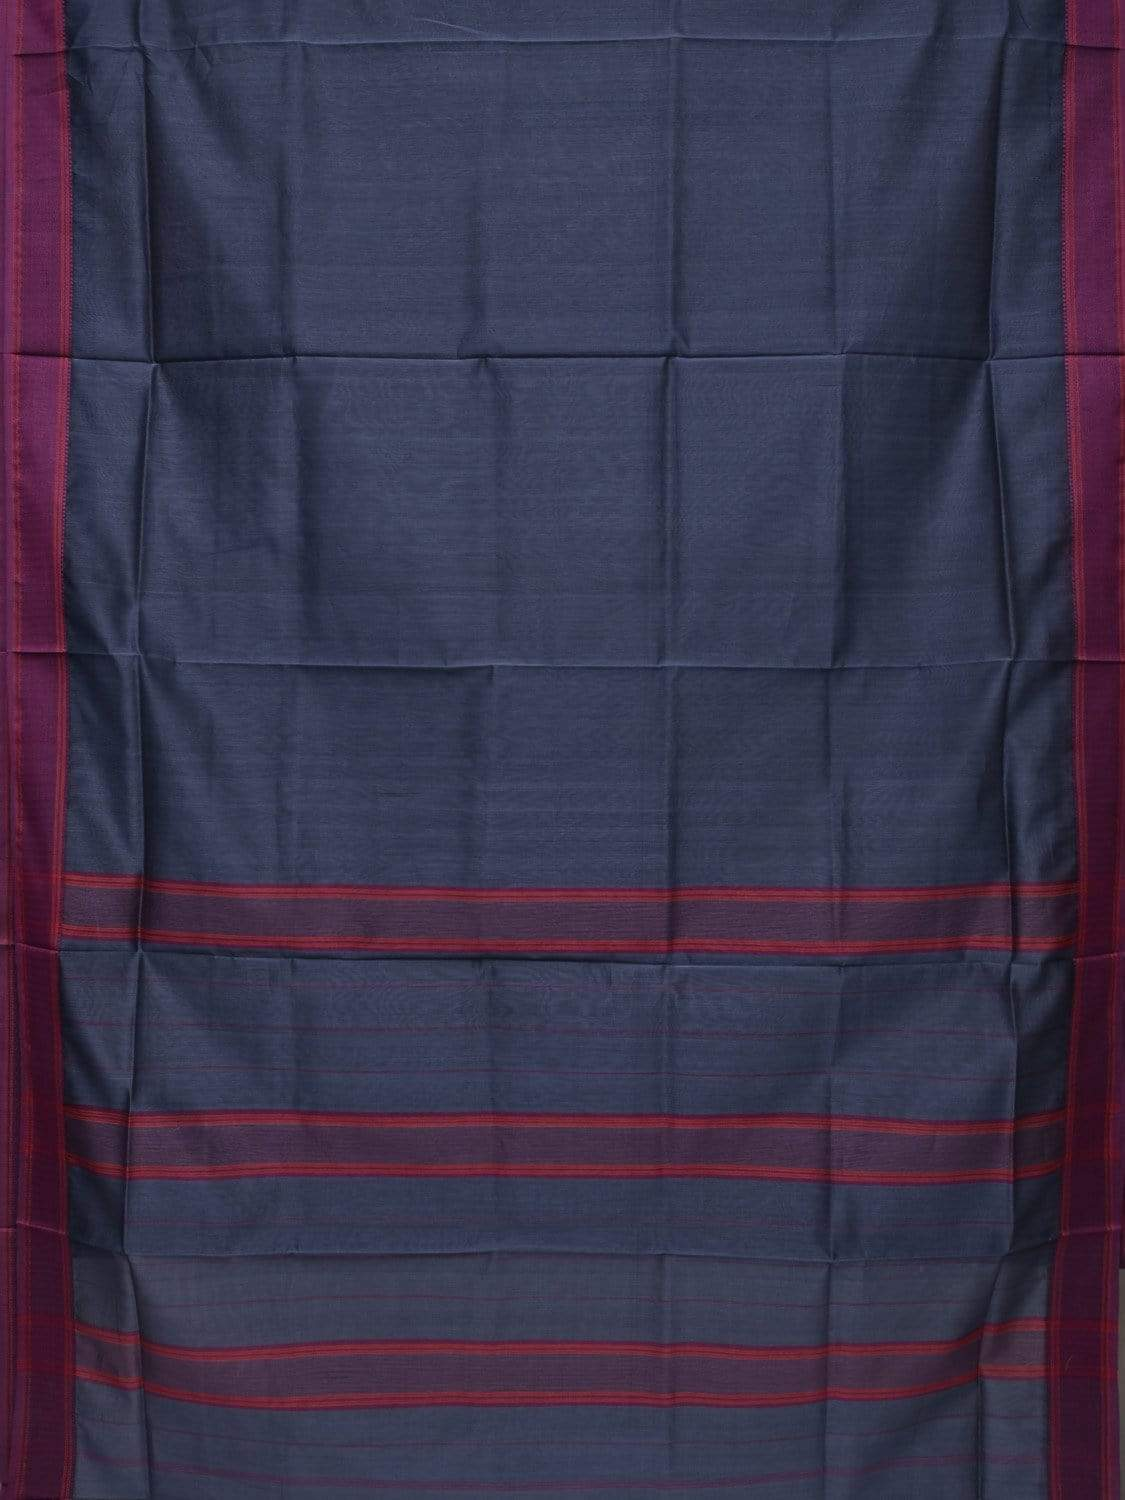 Navy Blue Maheshwari Cotton Silk Handloom Saree with Strips Pallu Design m0116